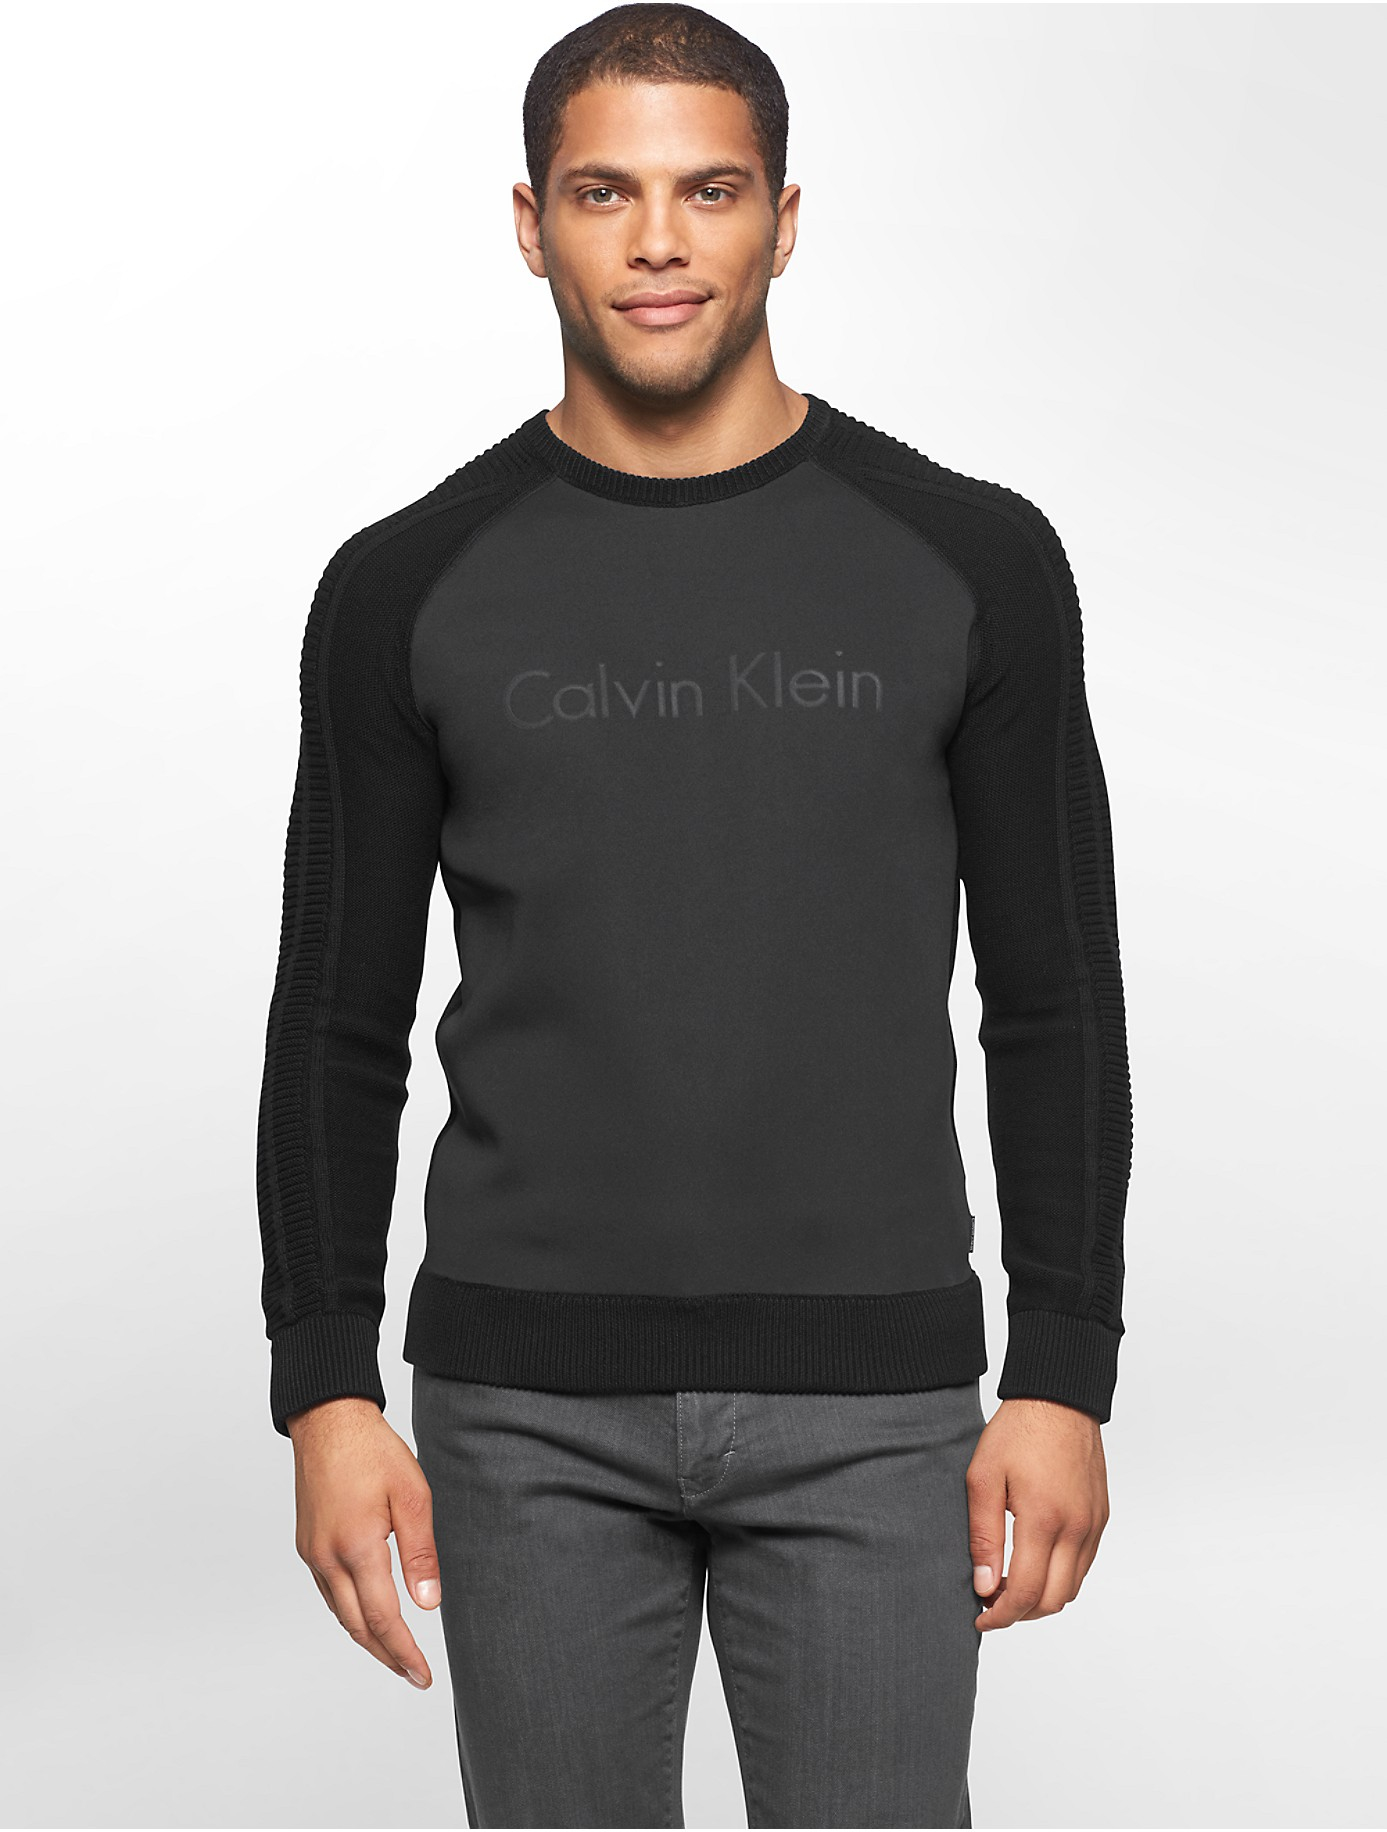 calvin klein jeans logo sweater long sweater jacket. Black Bedroom Furniture Sets. Home Design Ideas